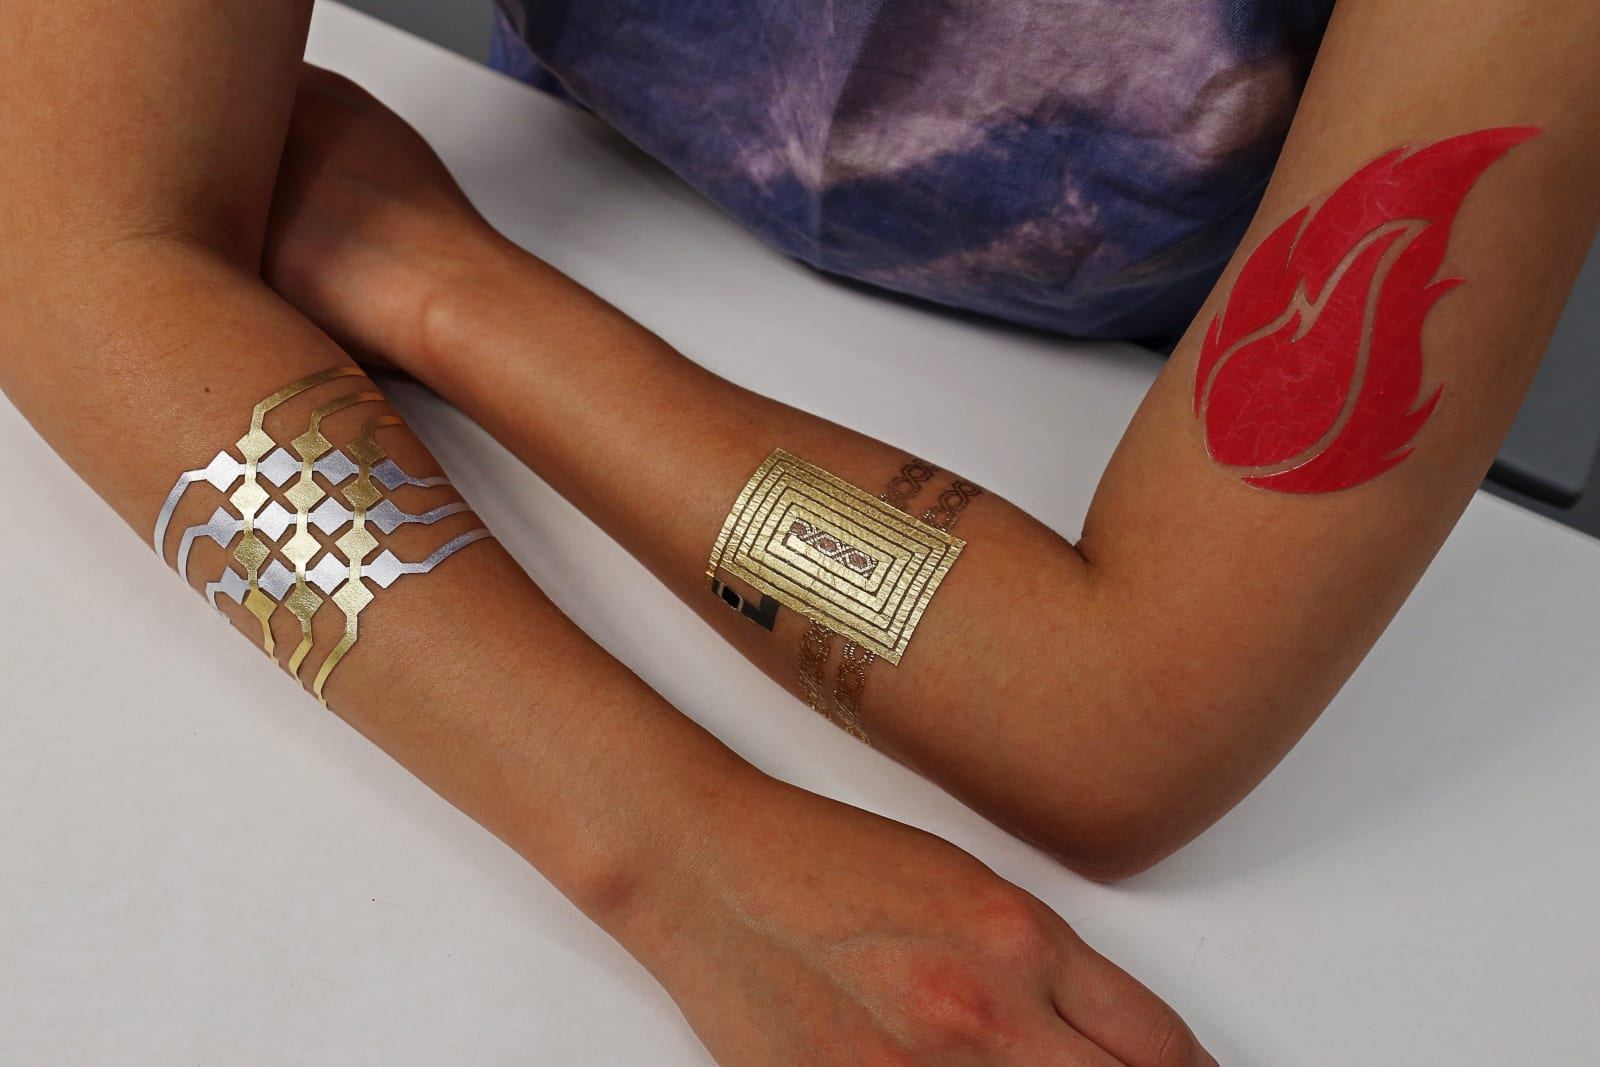 Temporary Tattoo Can Control Smartphone/Devices